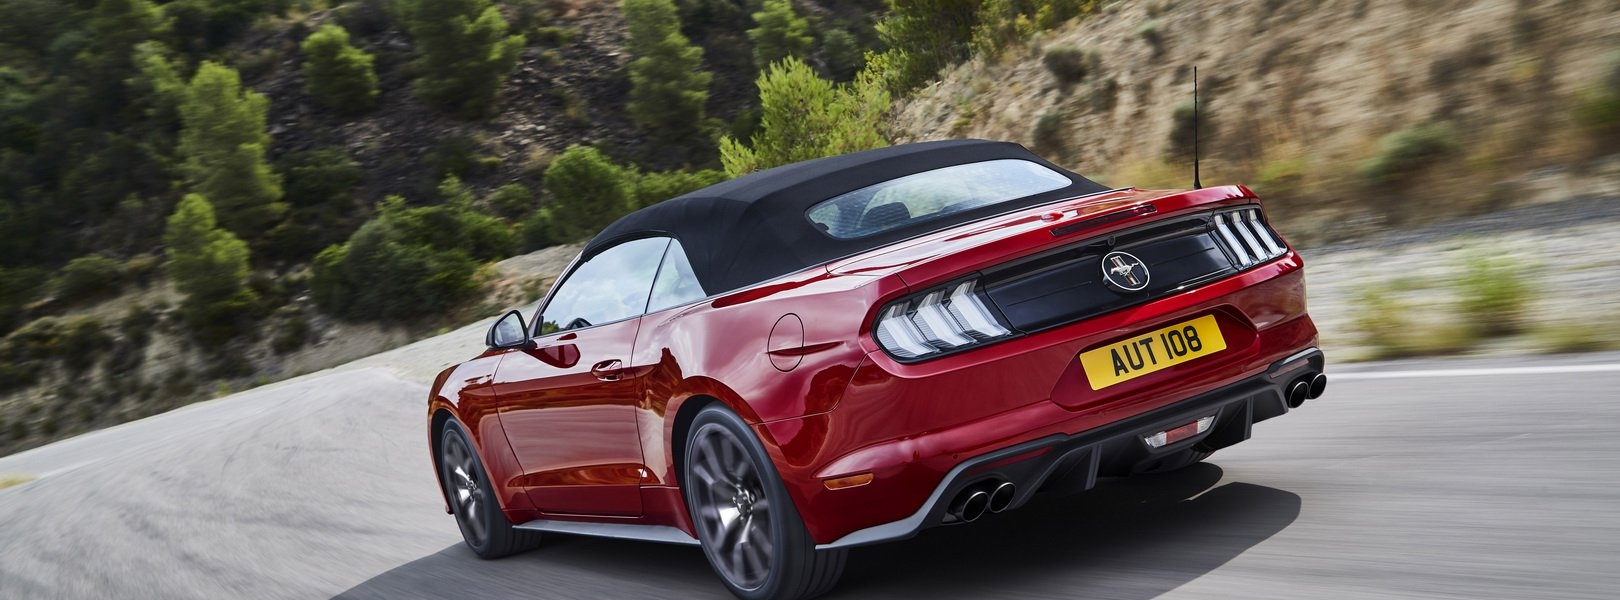 2020-ford-mustang55-edition-4.jpg